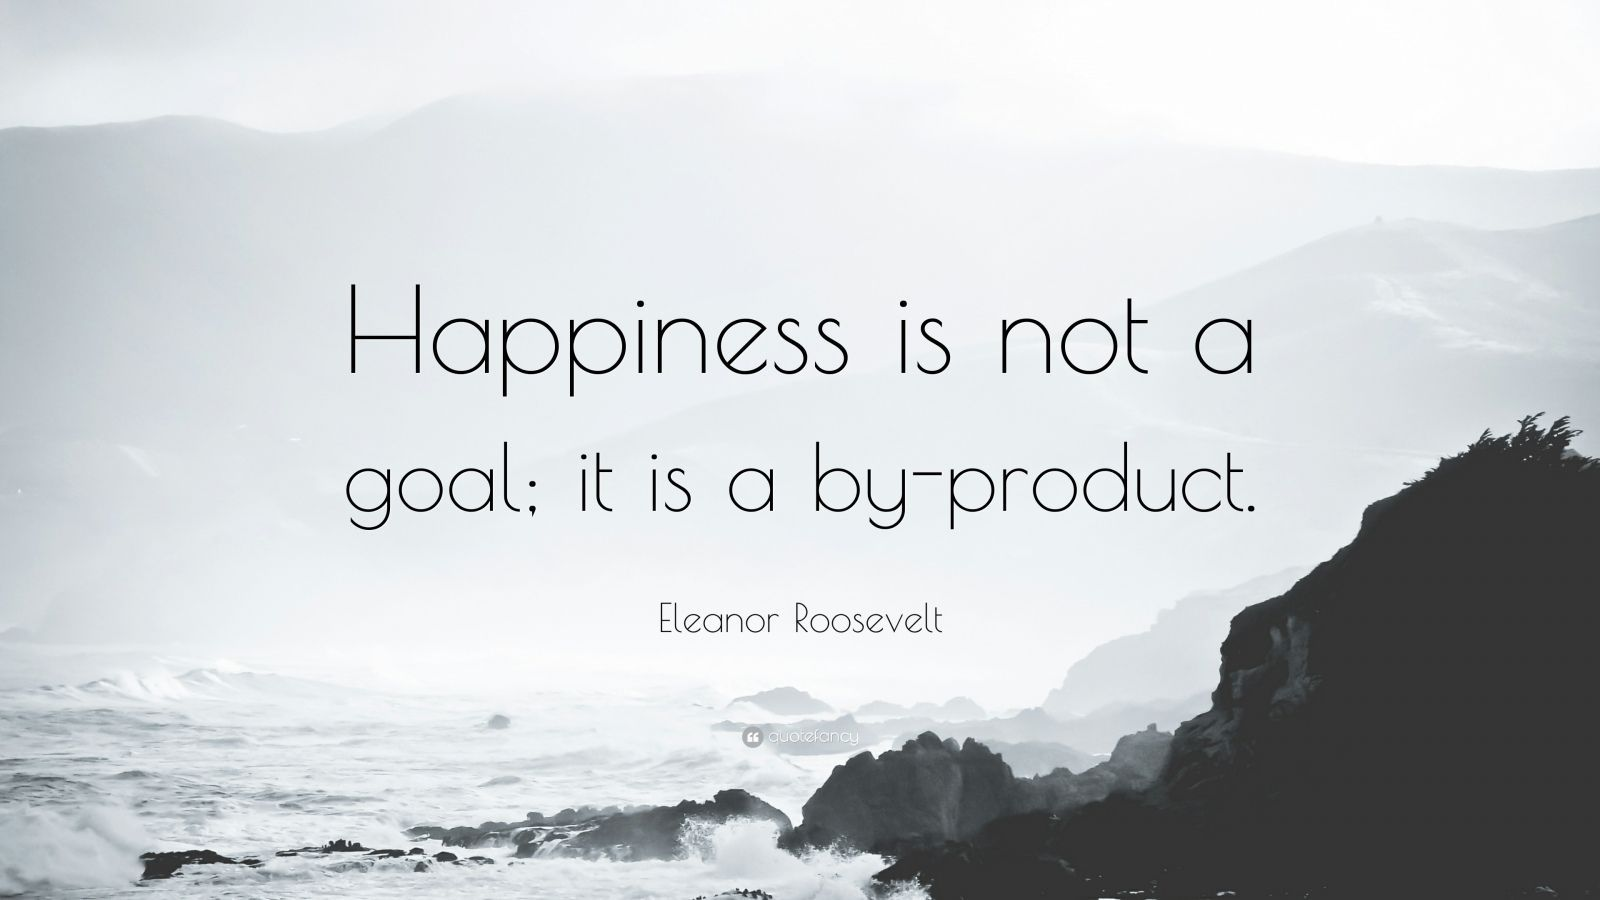 Quotes About Happiness Brilliant Top 25 Most Inspiring Quotes Guaranteed To Motivate You . Review